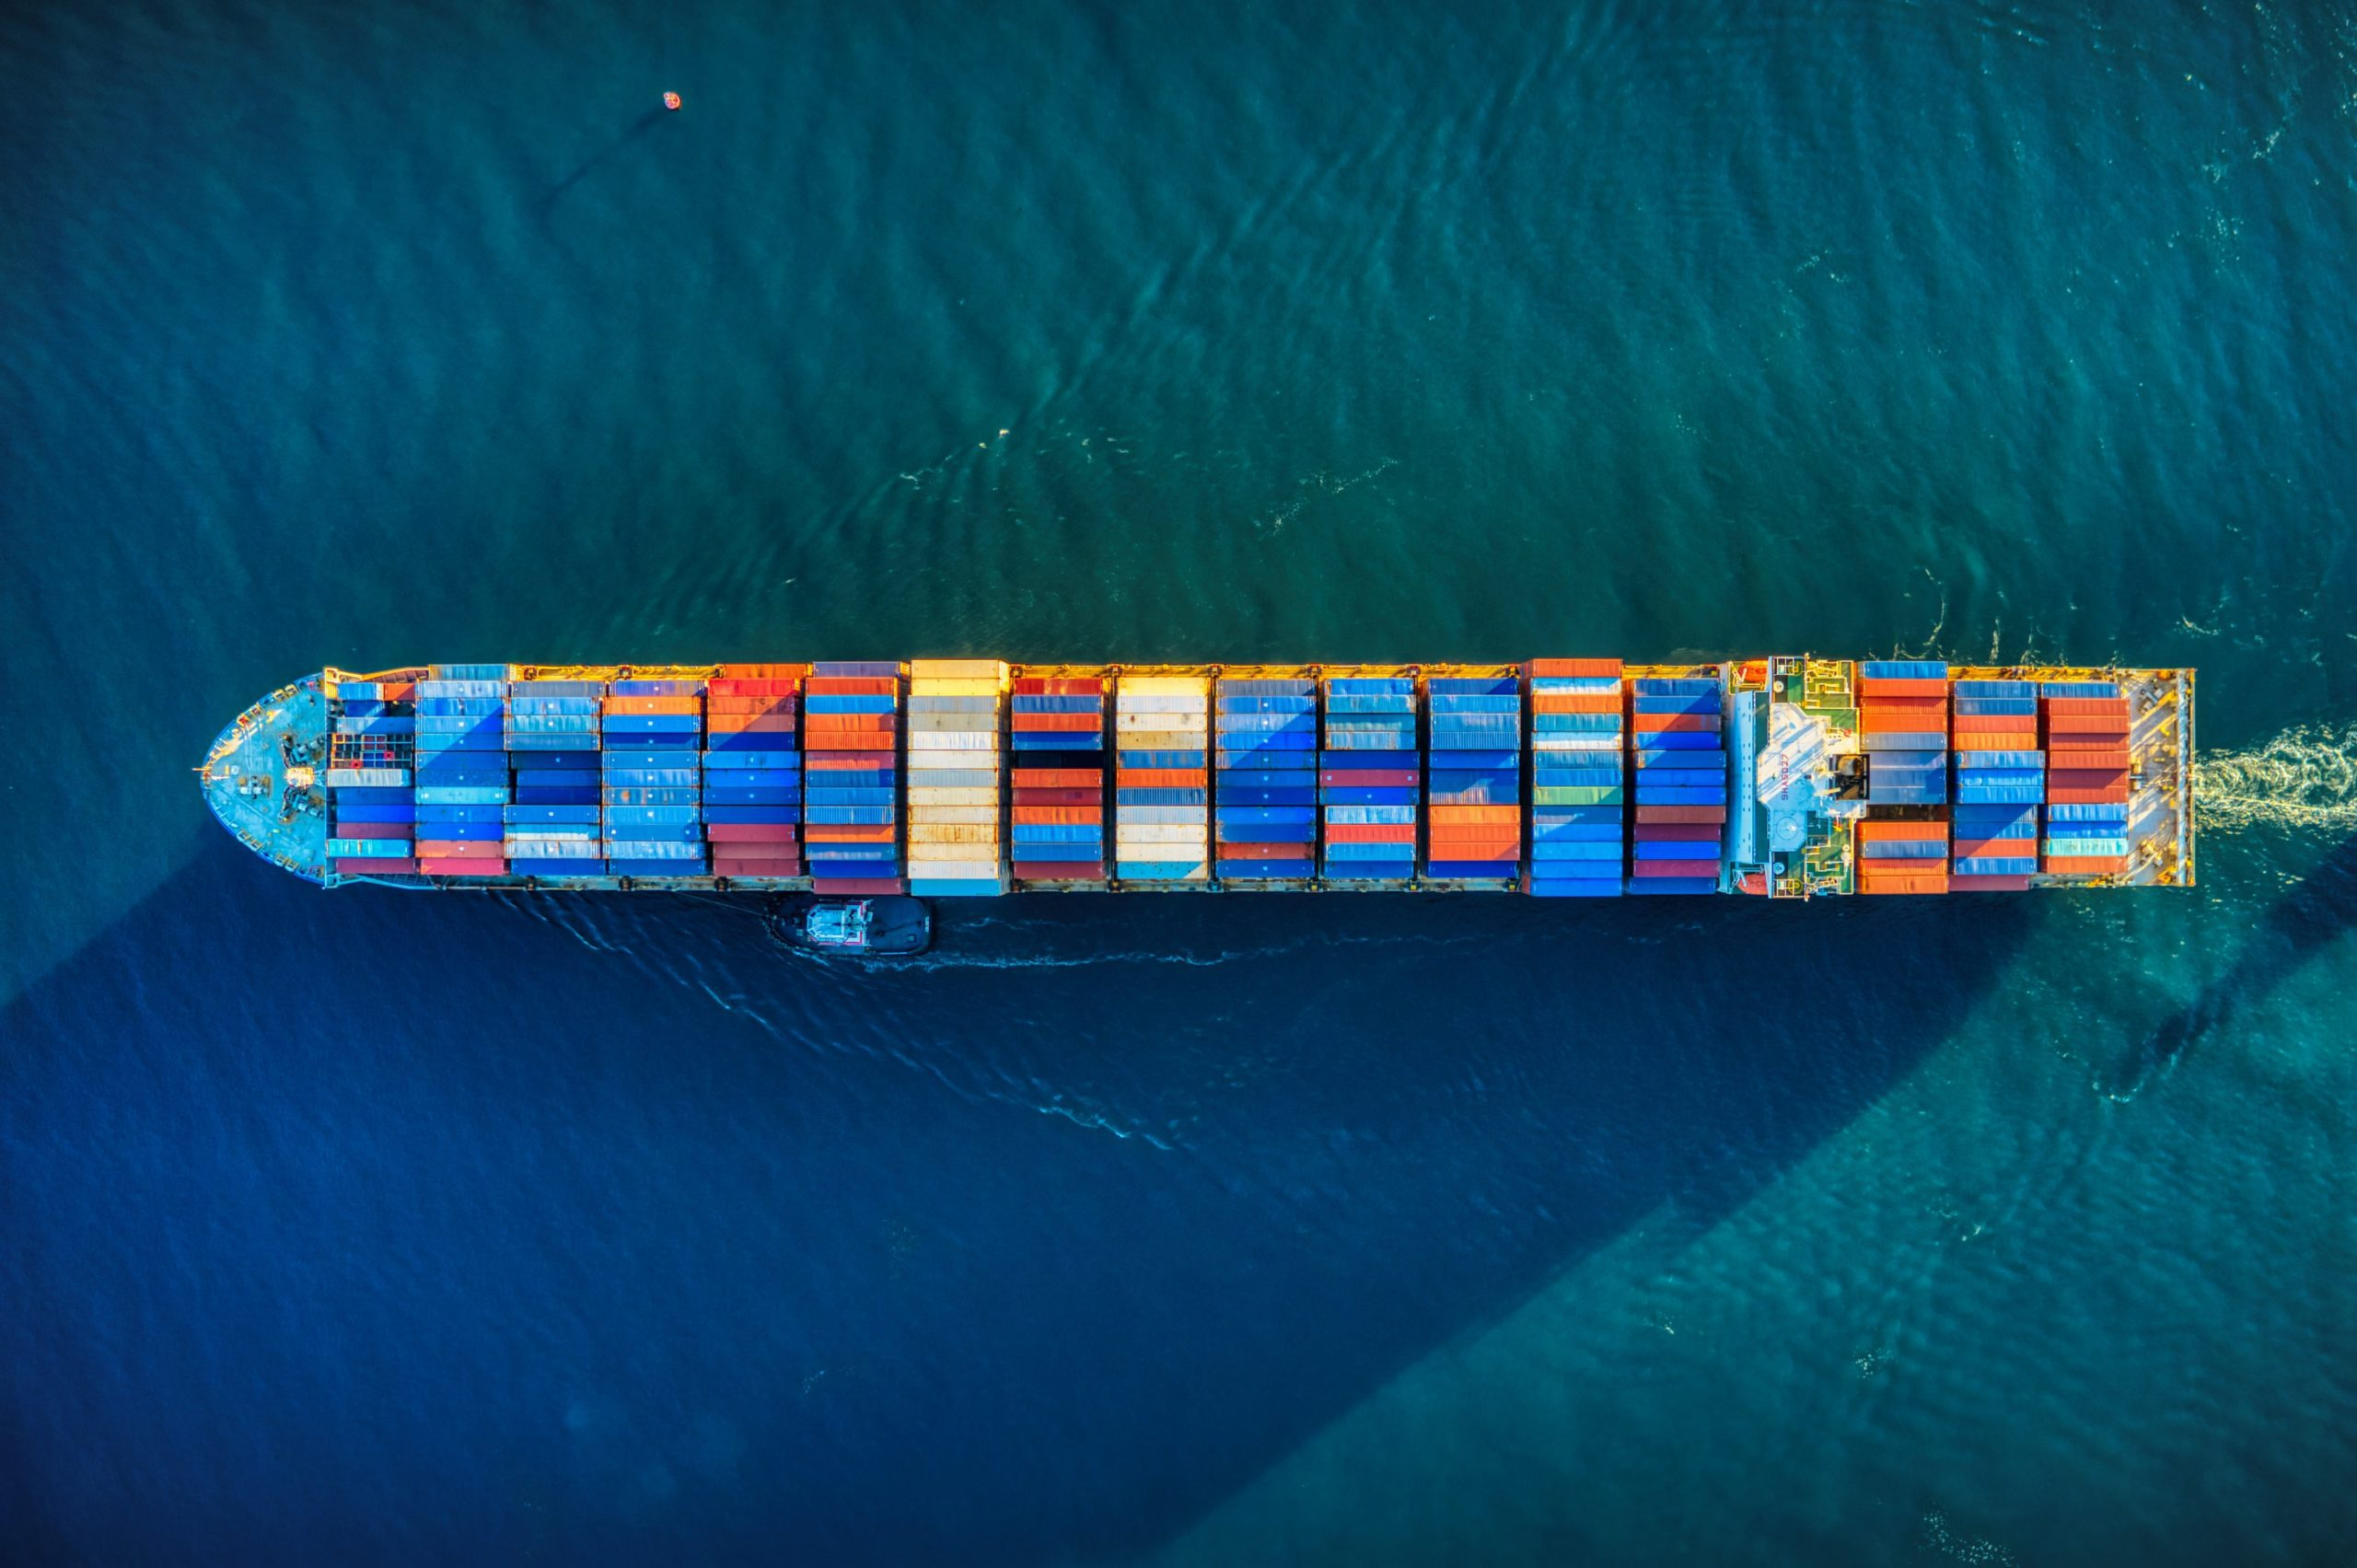 A birdseye view of a cargo ship filled with shipping containers